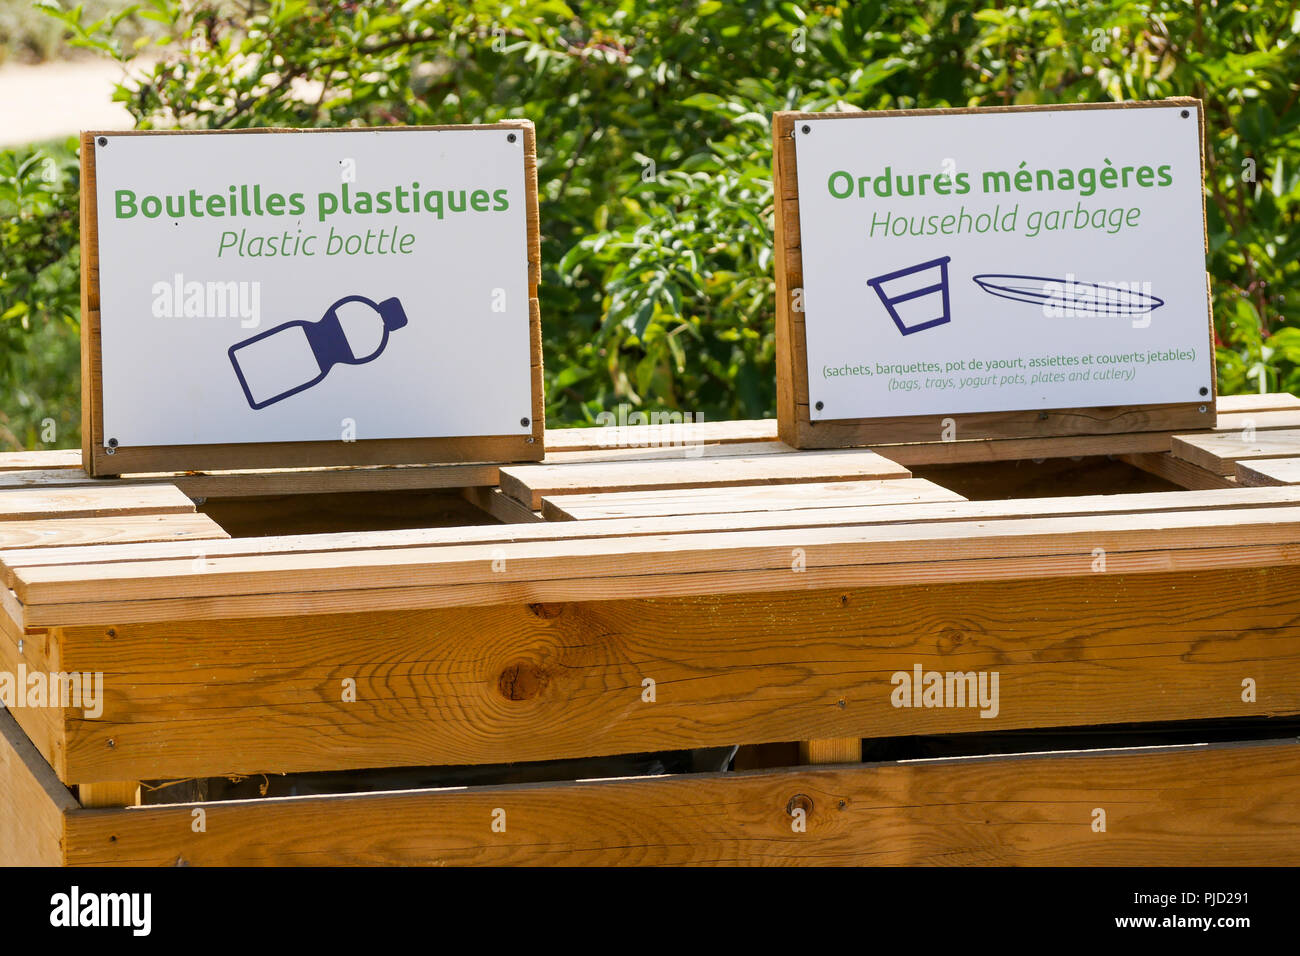 Wood made receptacle for separate collecting of refuse, Birds Park, Villars Les Dombes, France - Stock Image